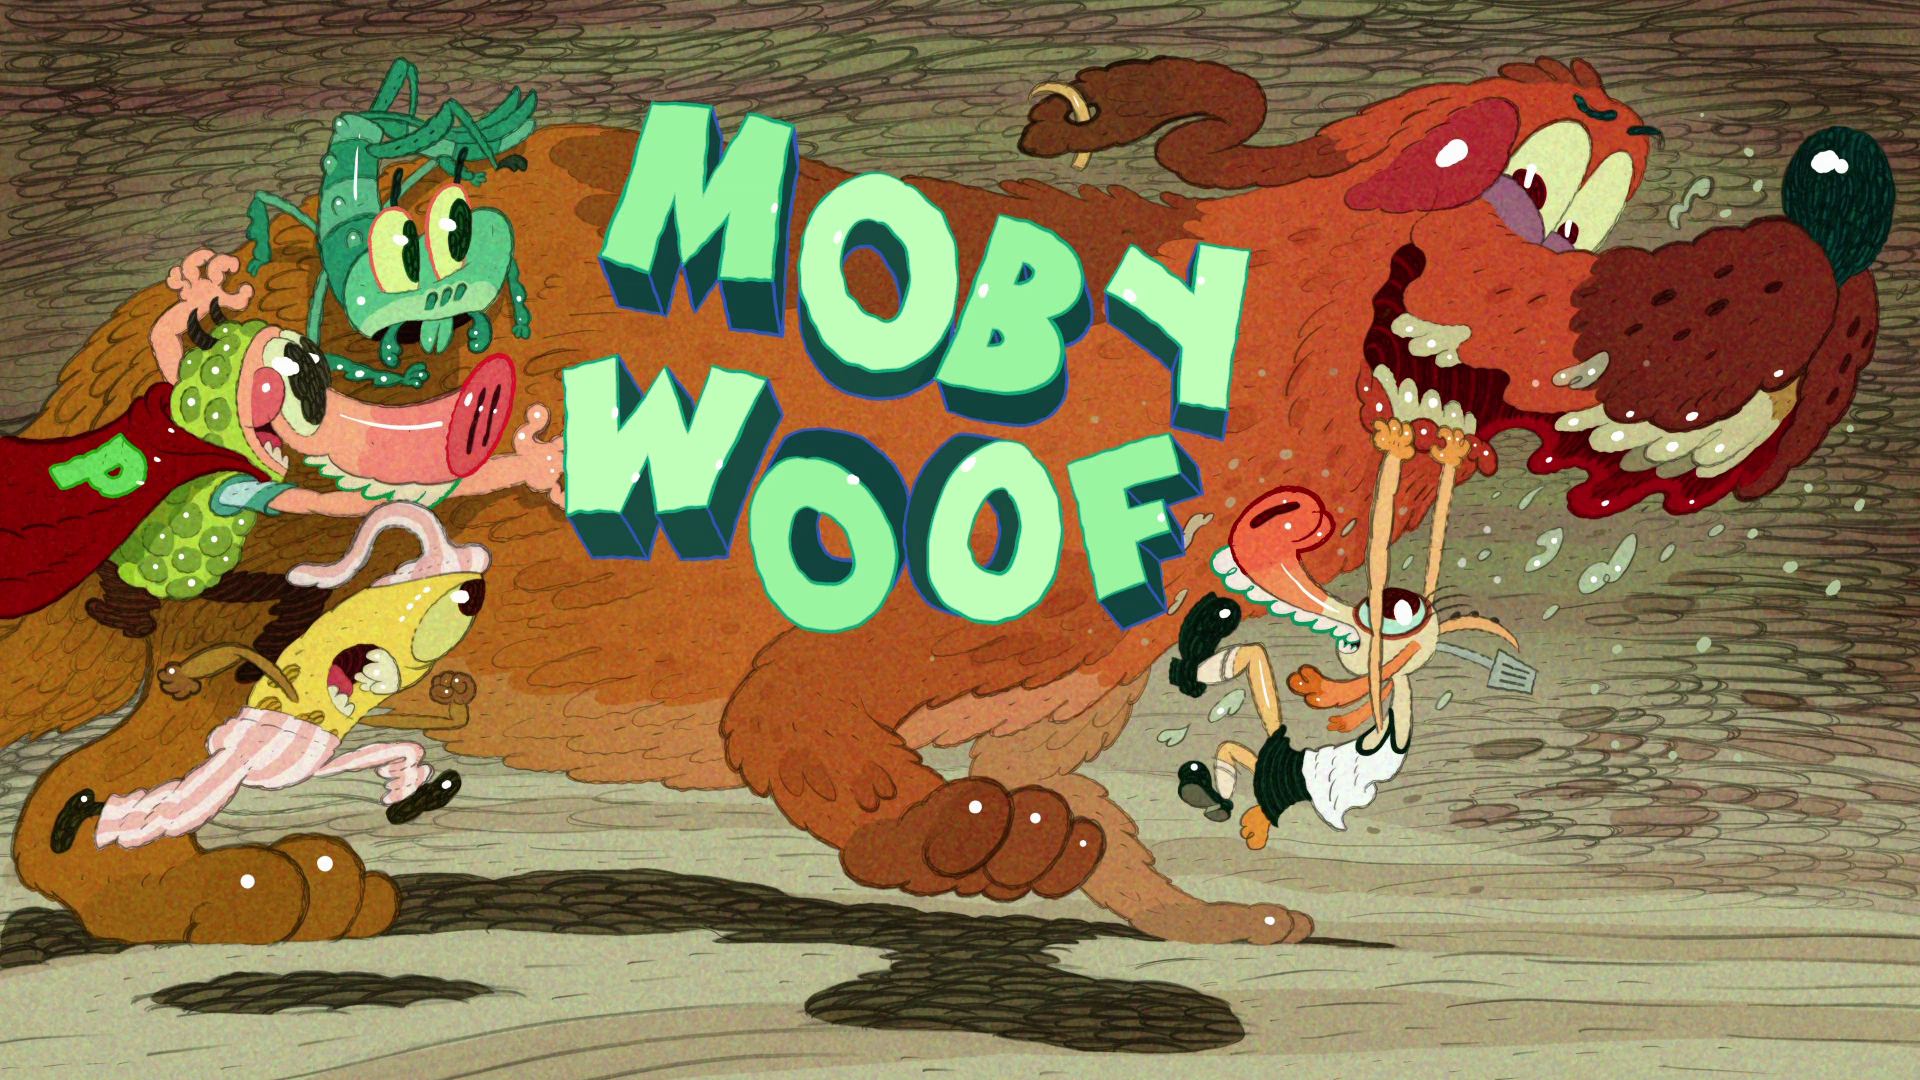 Moby Woof Pig Goat Banana Cricket Wiki Fandom Powered By